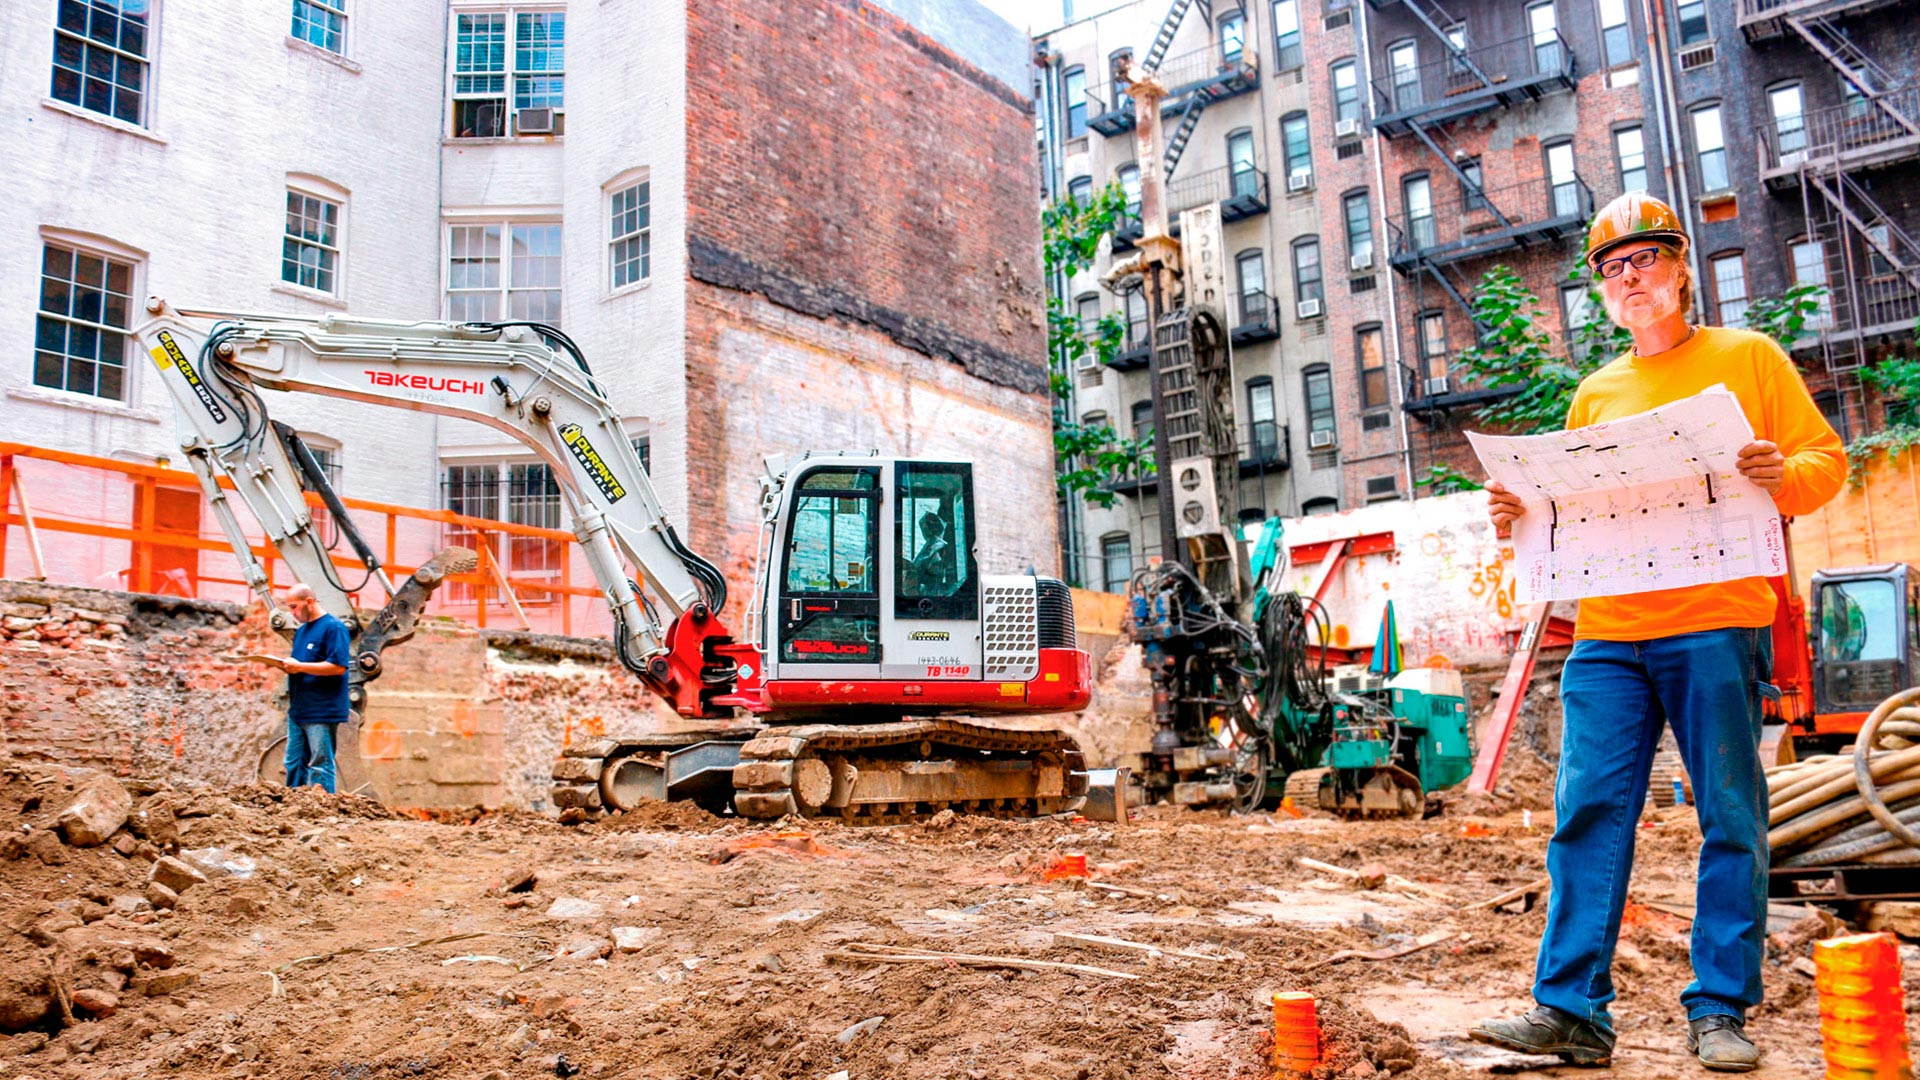 Man on construction site with excavator new york city